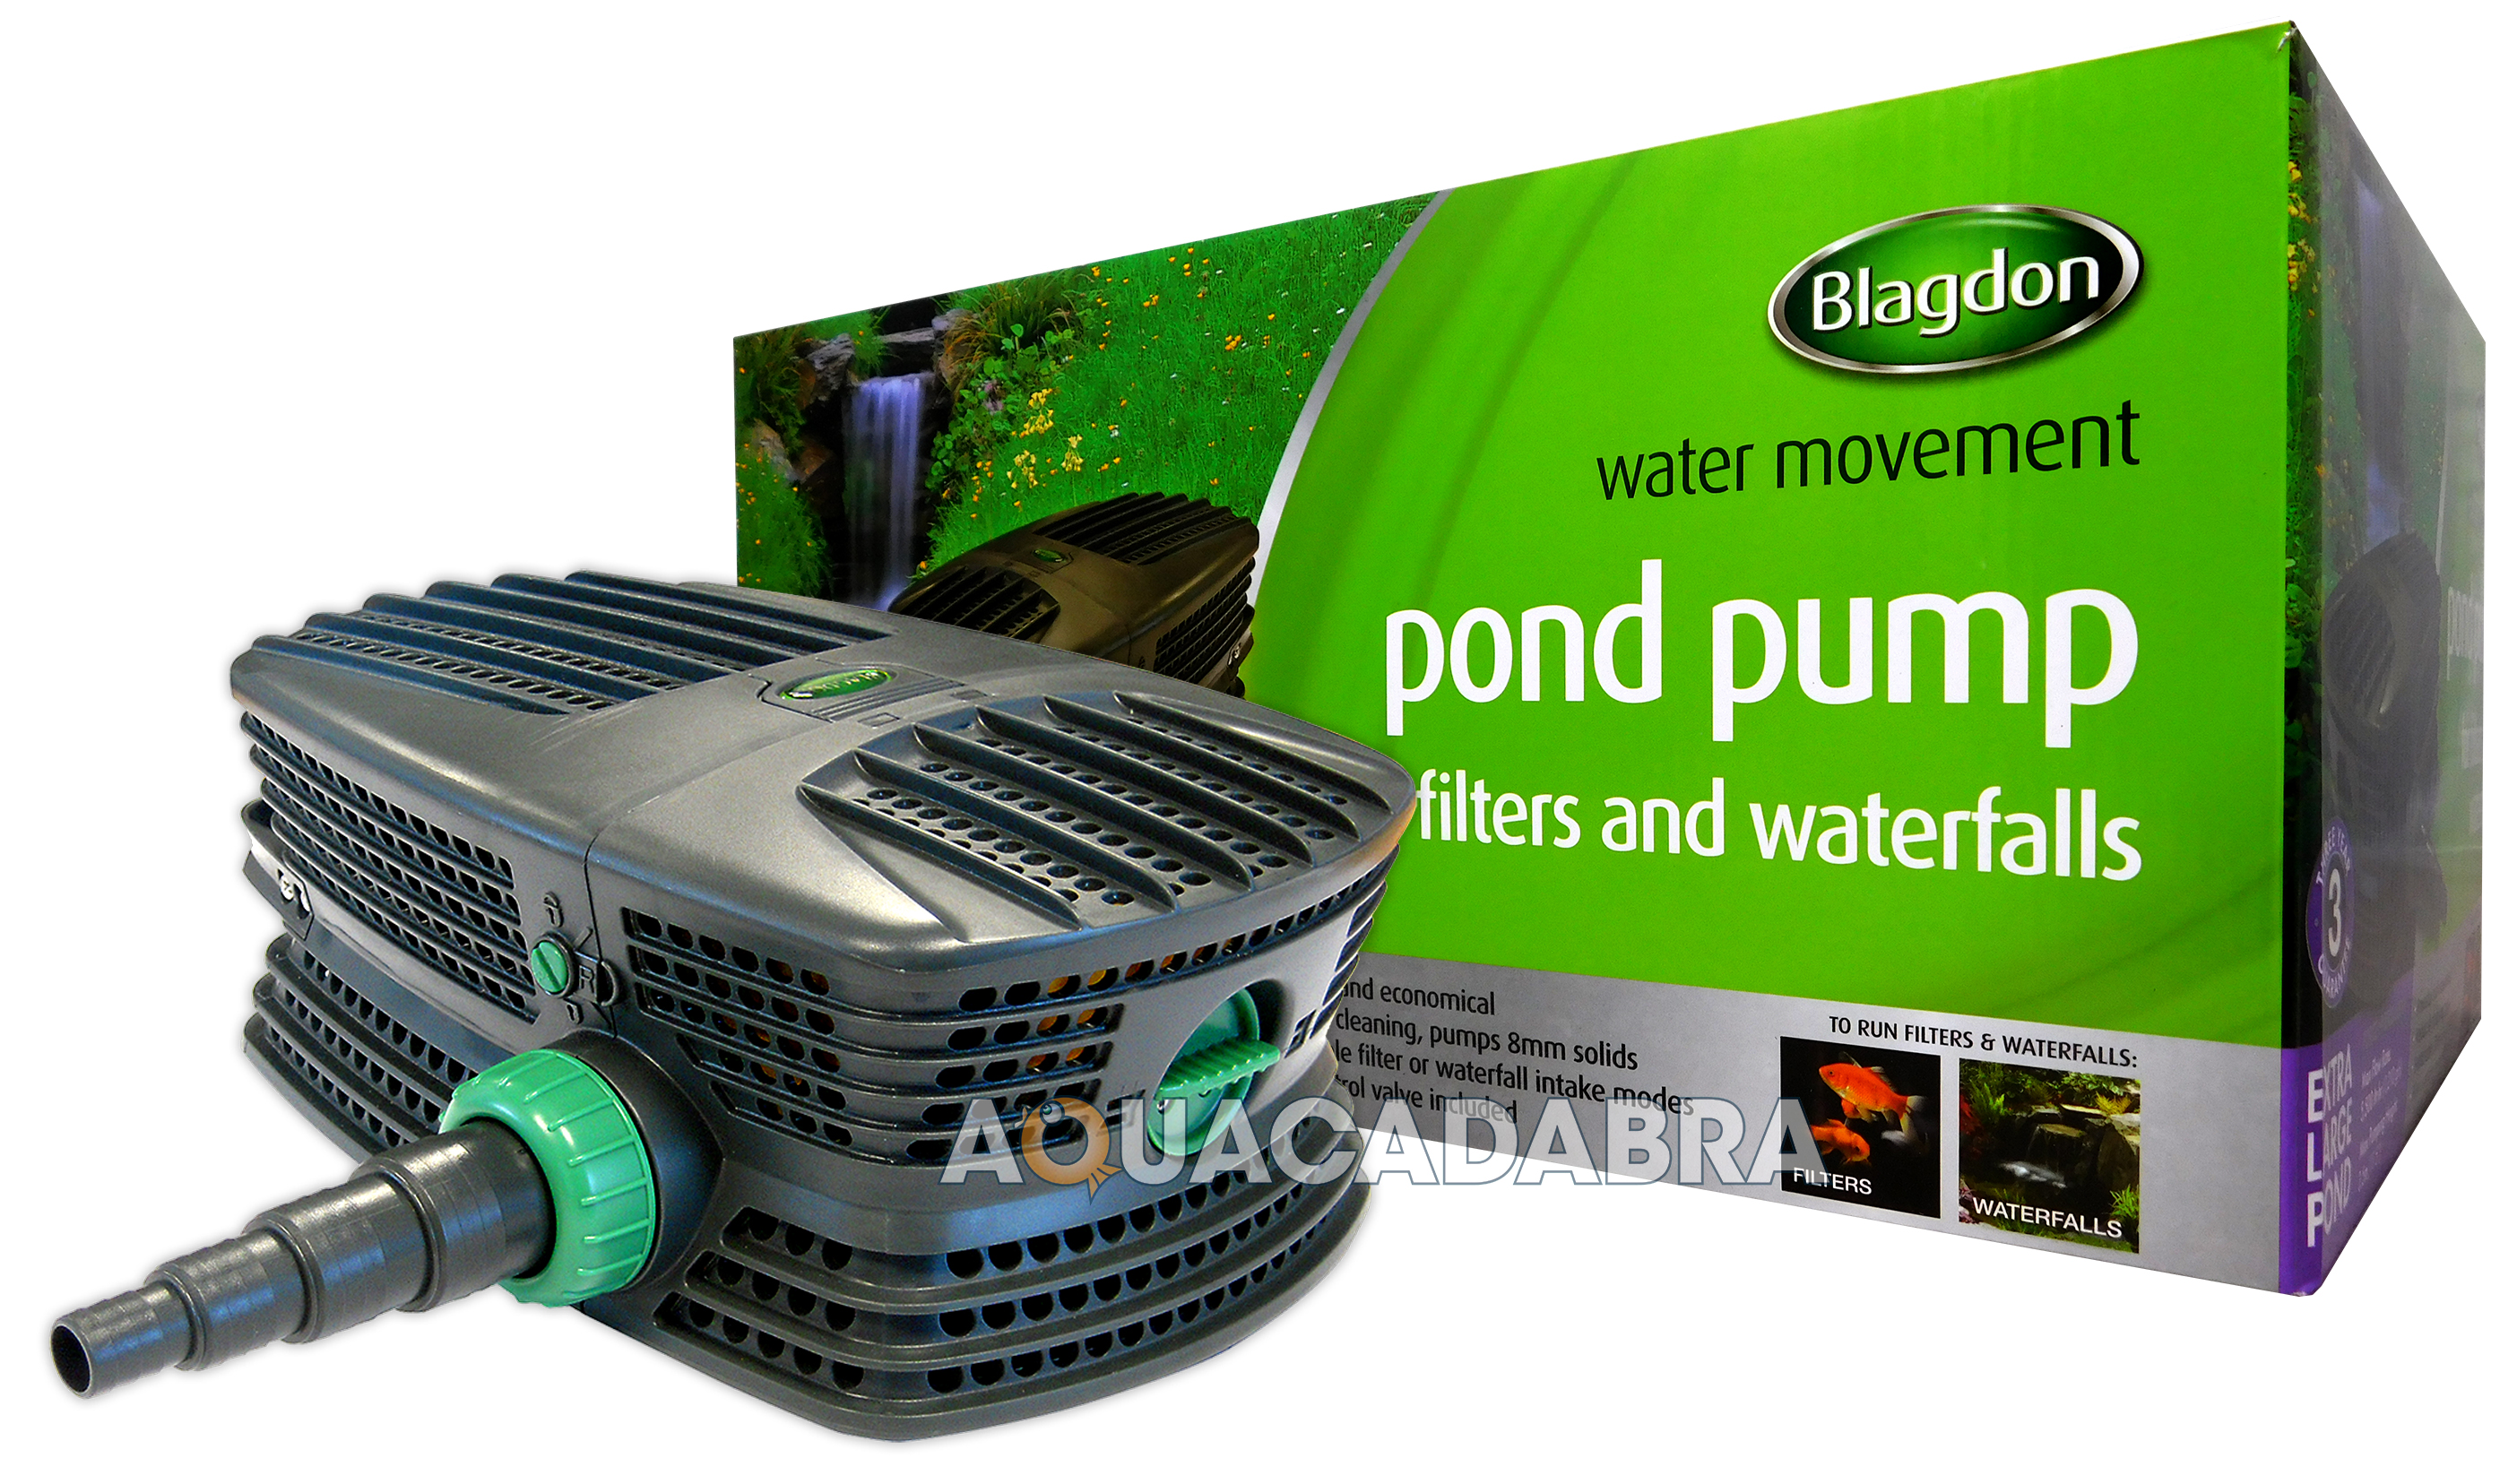 Blagdon force hybrid fh garden fish pond filter pump koi for Fish pond pumps and filters